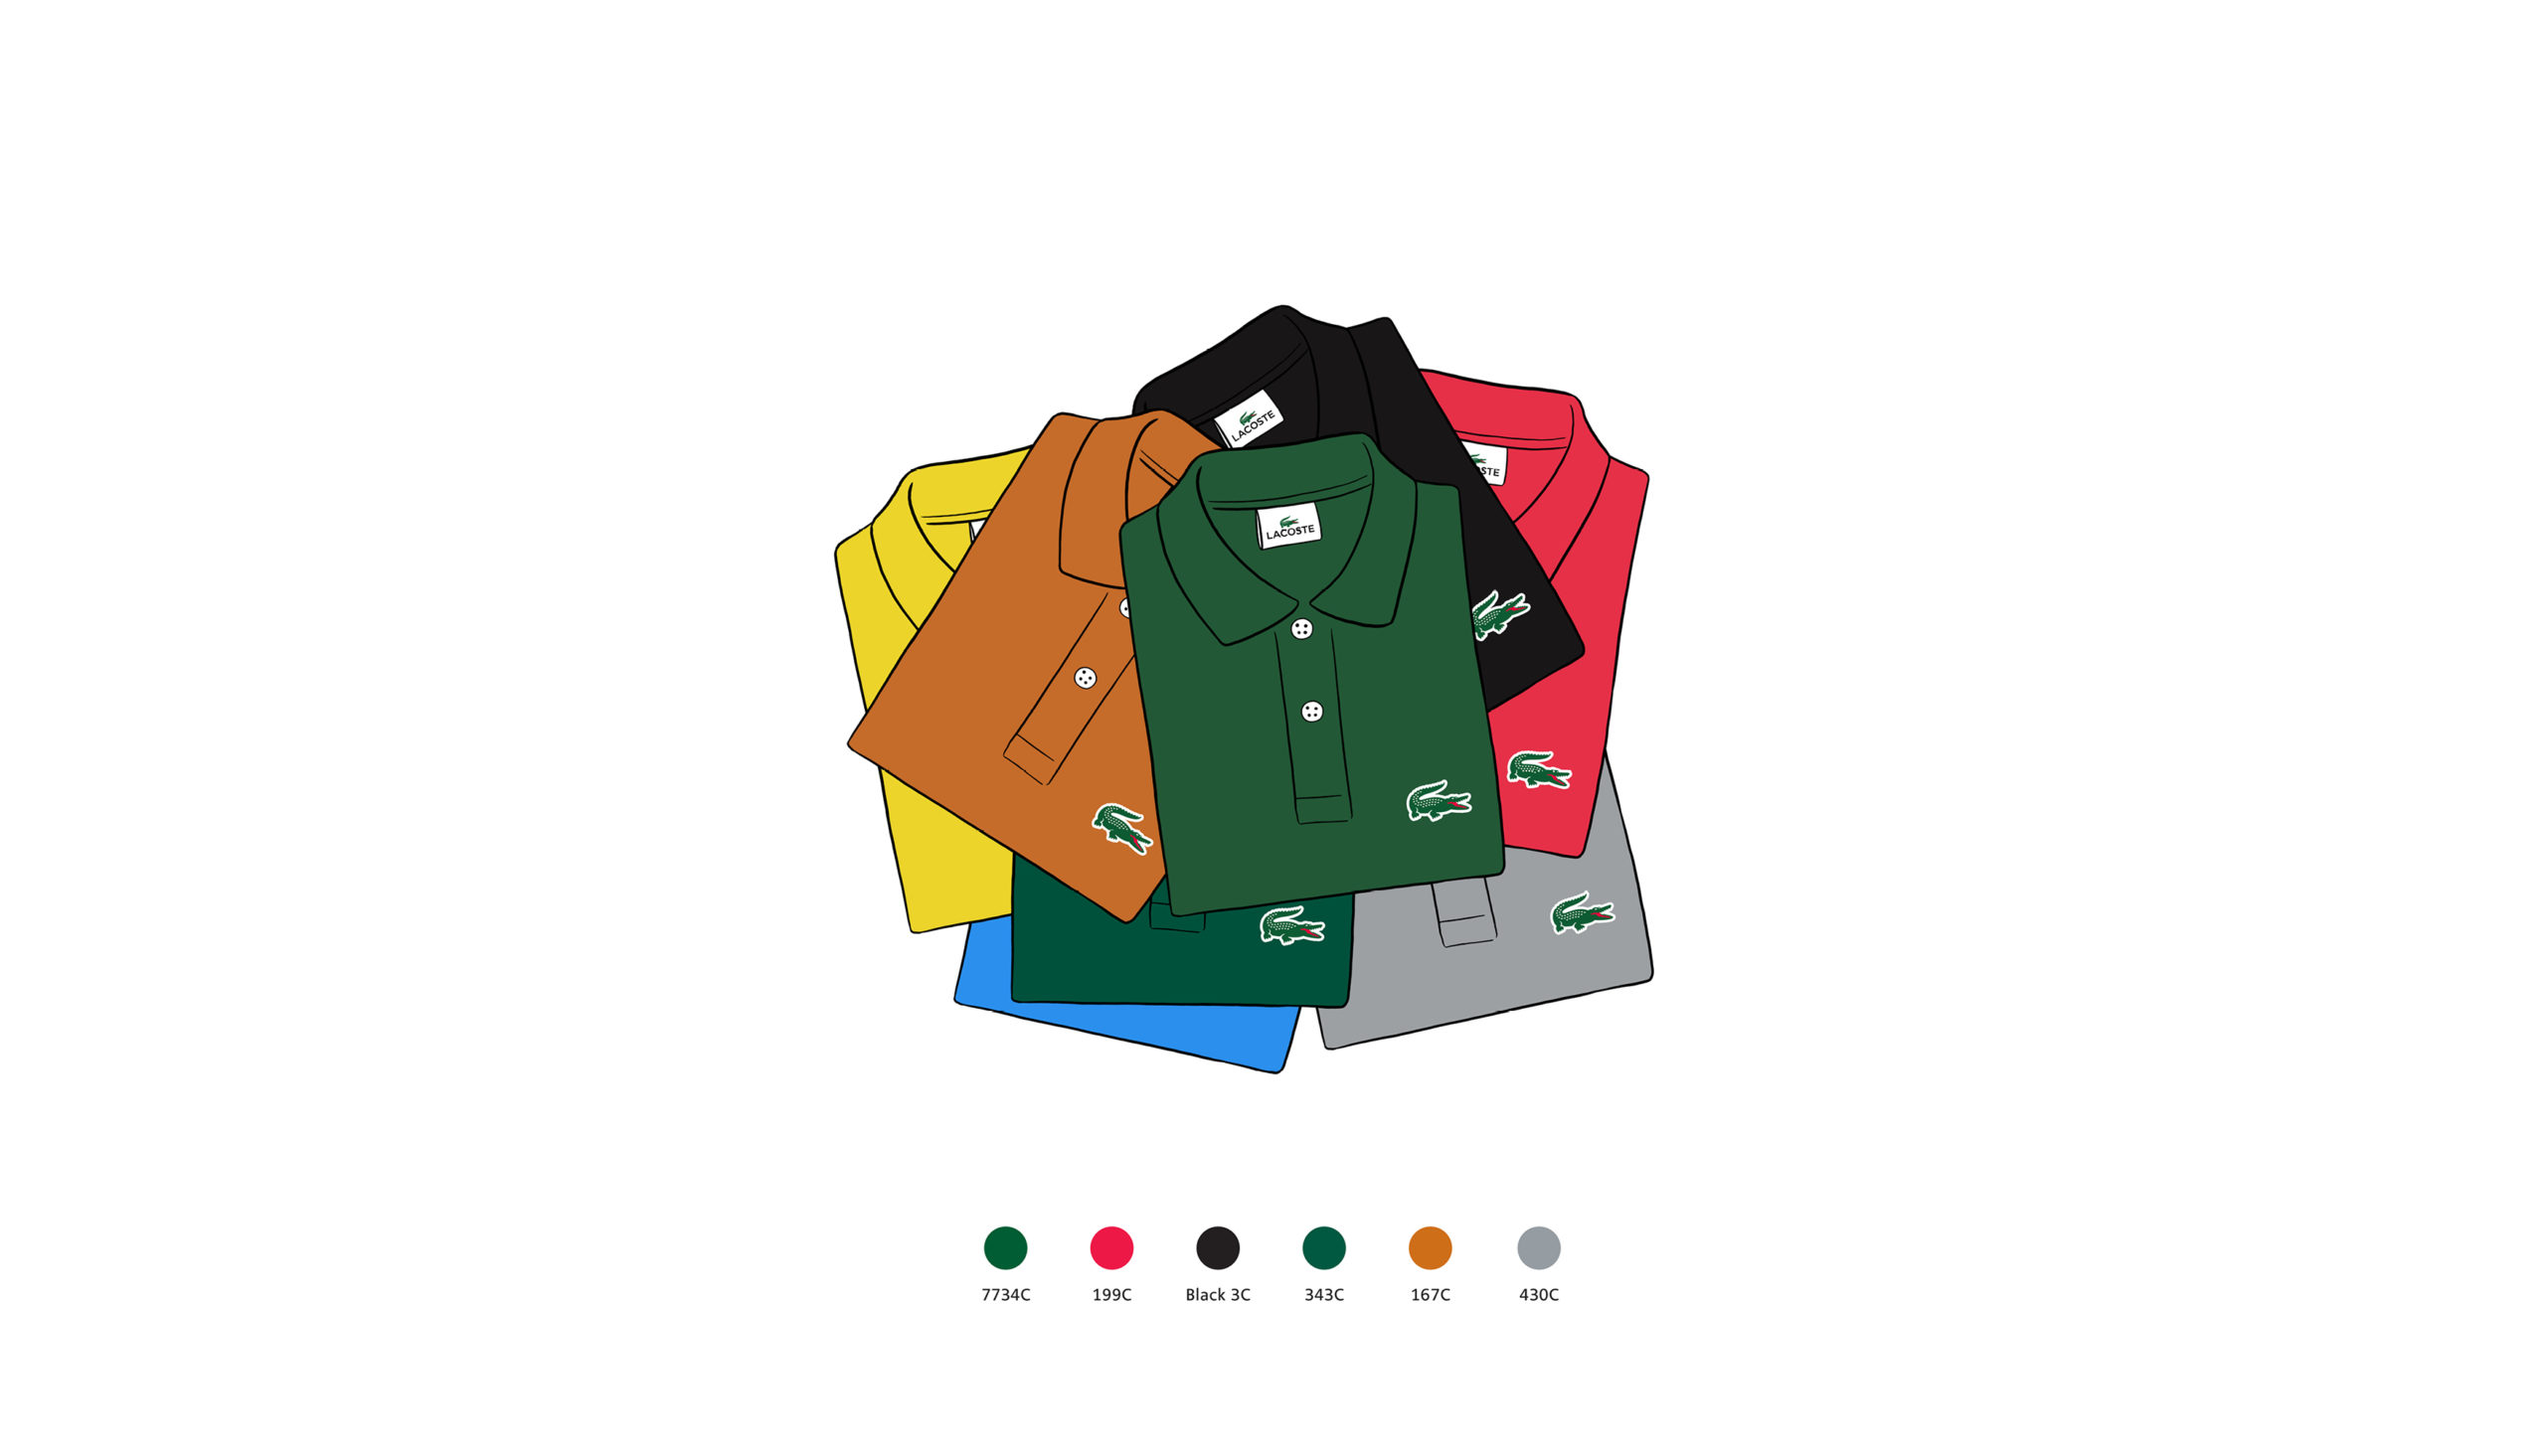 LACOSTE_STICKERS_HOBBYNOTE_R_0819